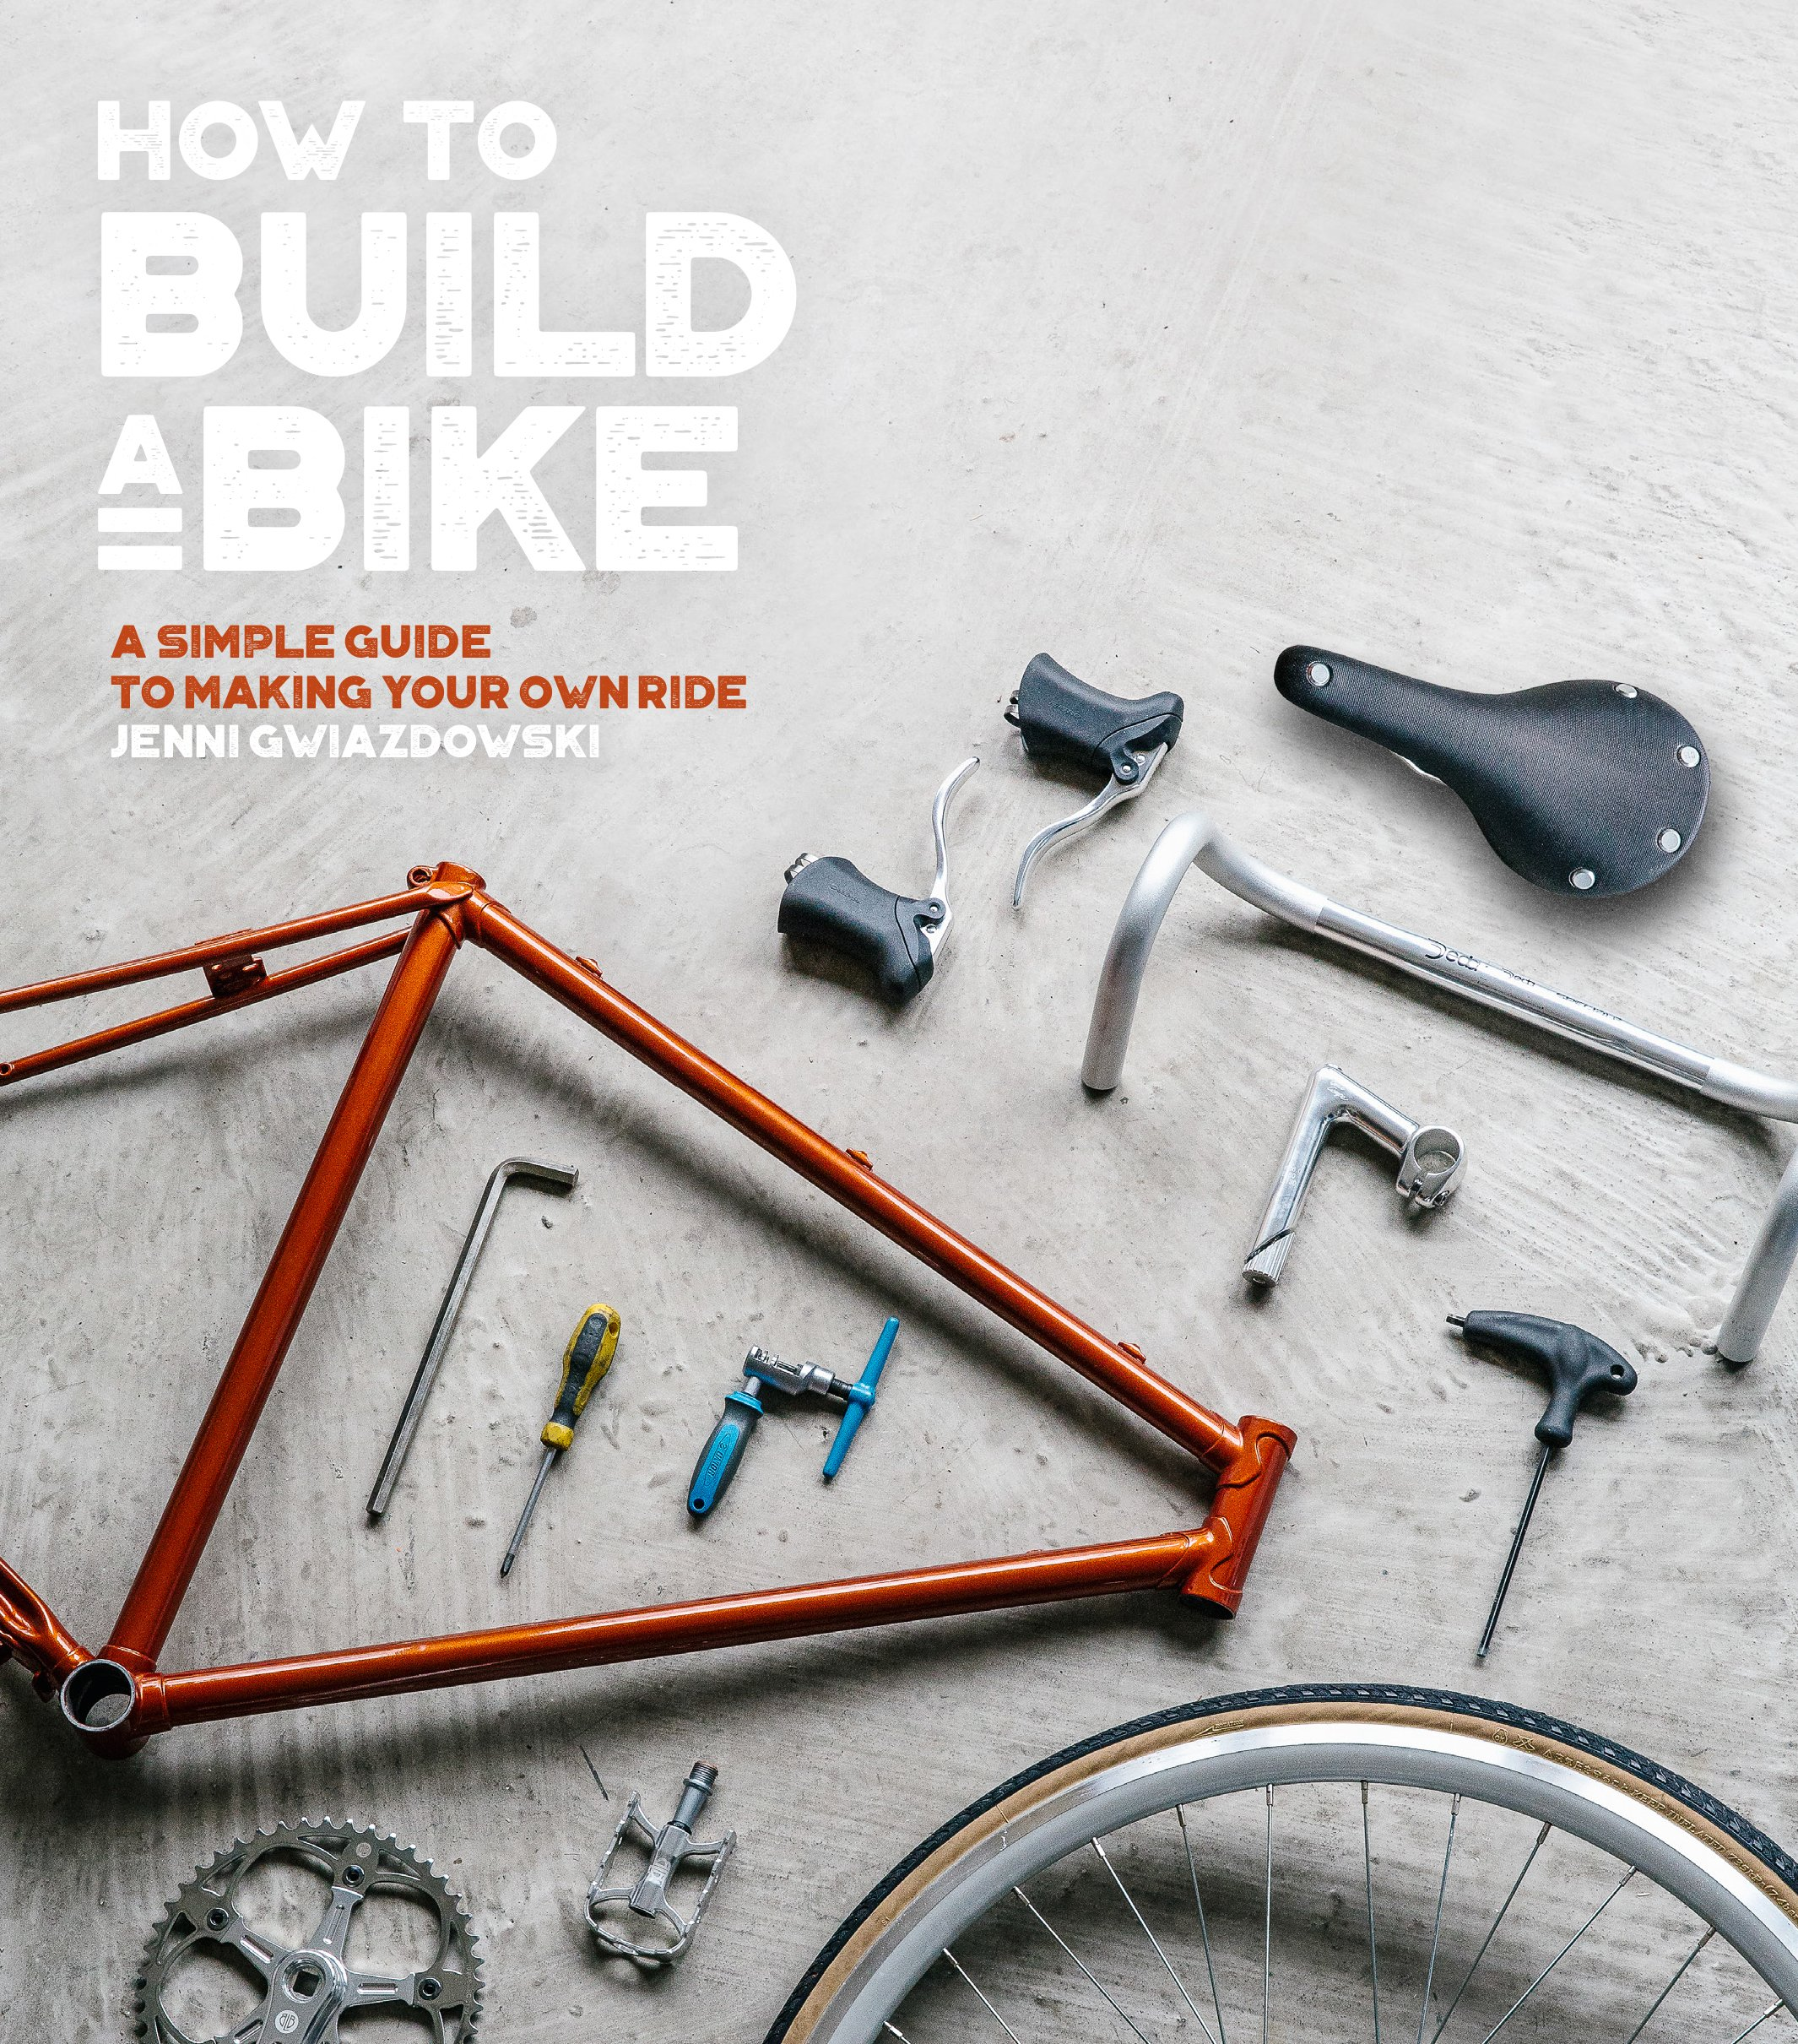 How To Build A Bike A Simple Guide To Making Your Own Ride